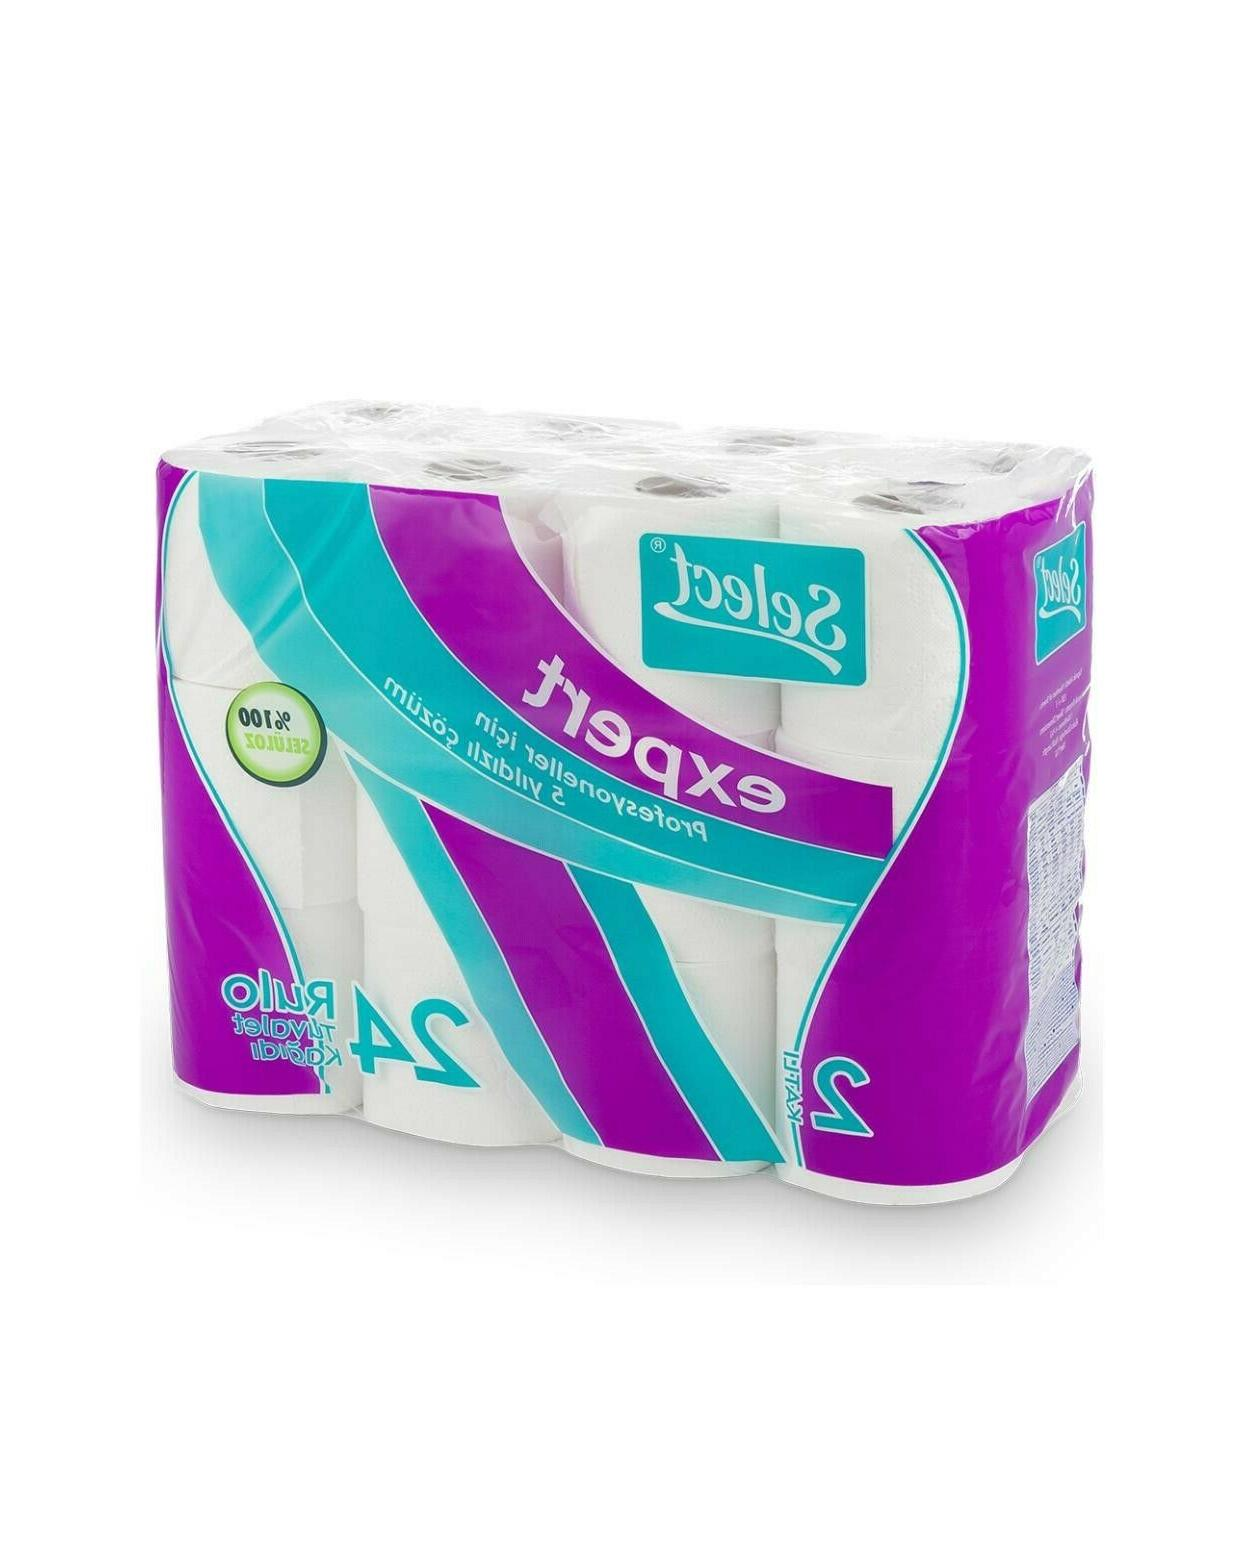 24 Select Toilet 2 Ply, %100 cellulose